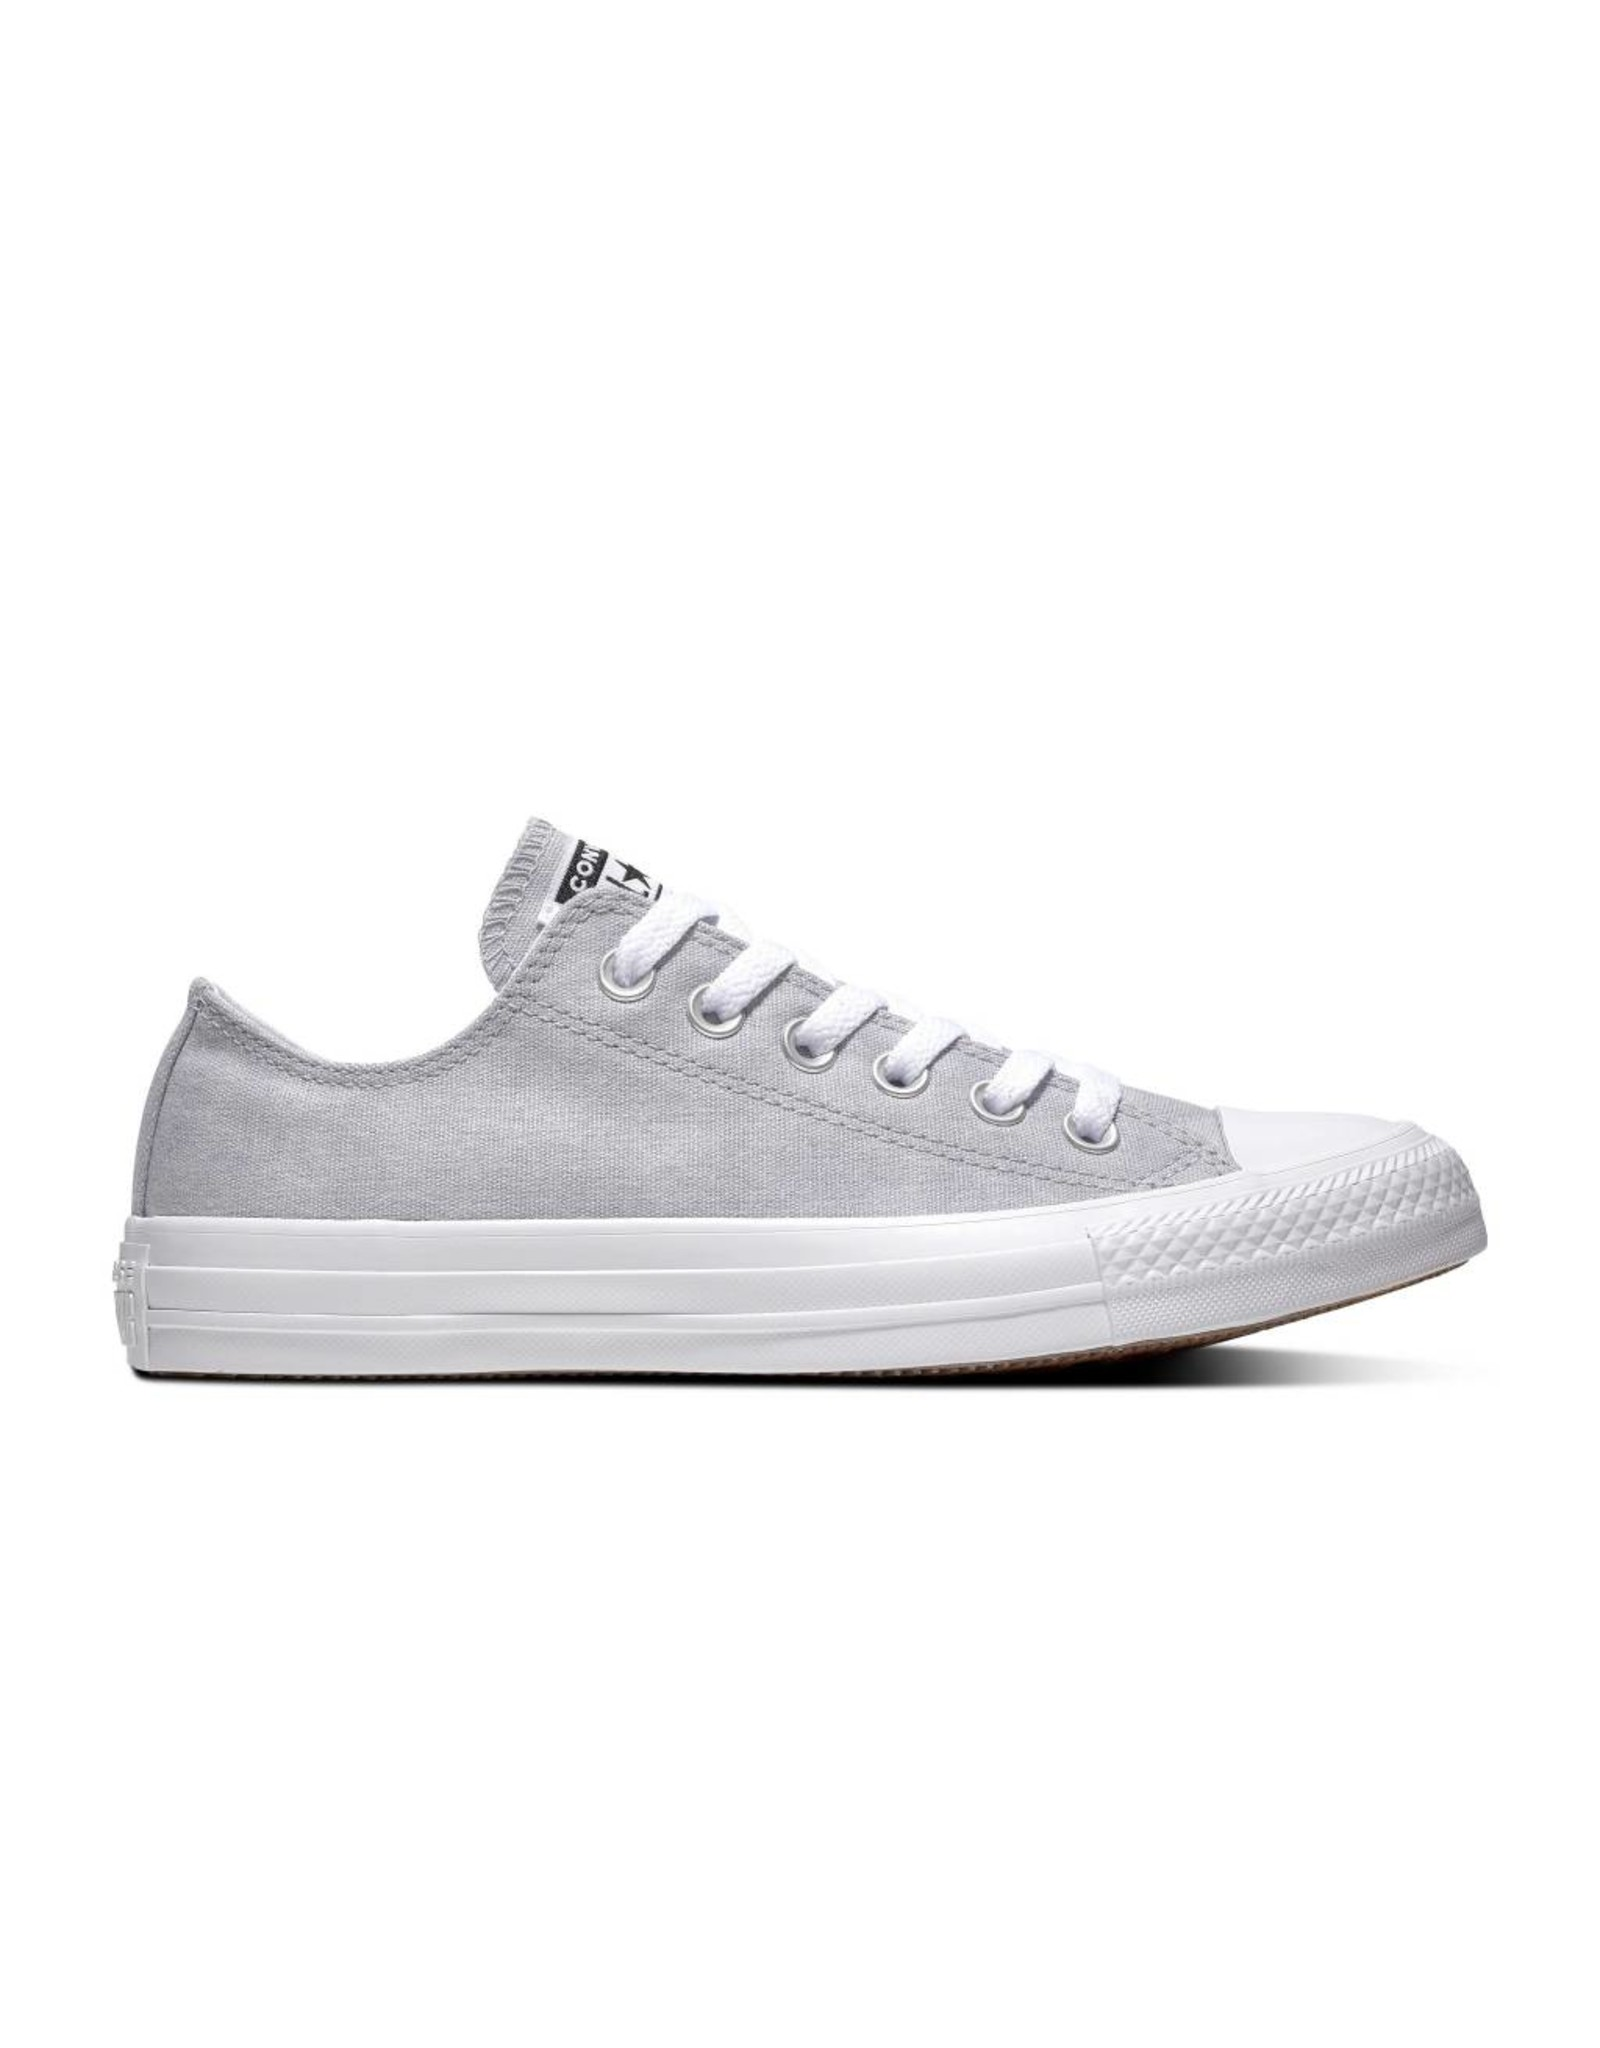 CONVERSE CHUCK TAYLOR ALL STAR OX WOLF GREY/WHITE/WHITE C13WO-163181C